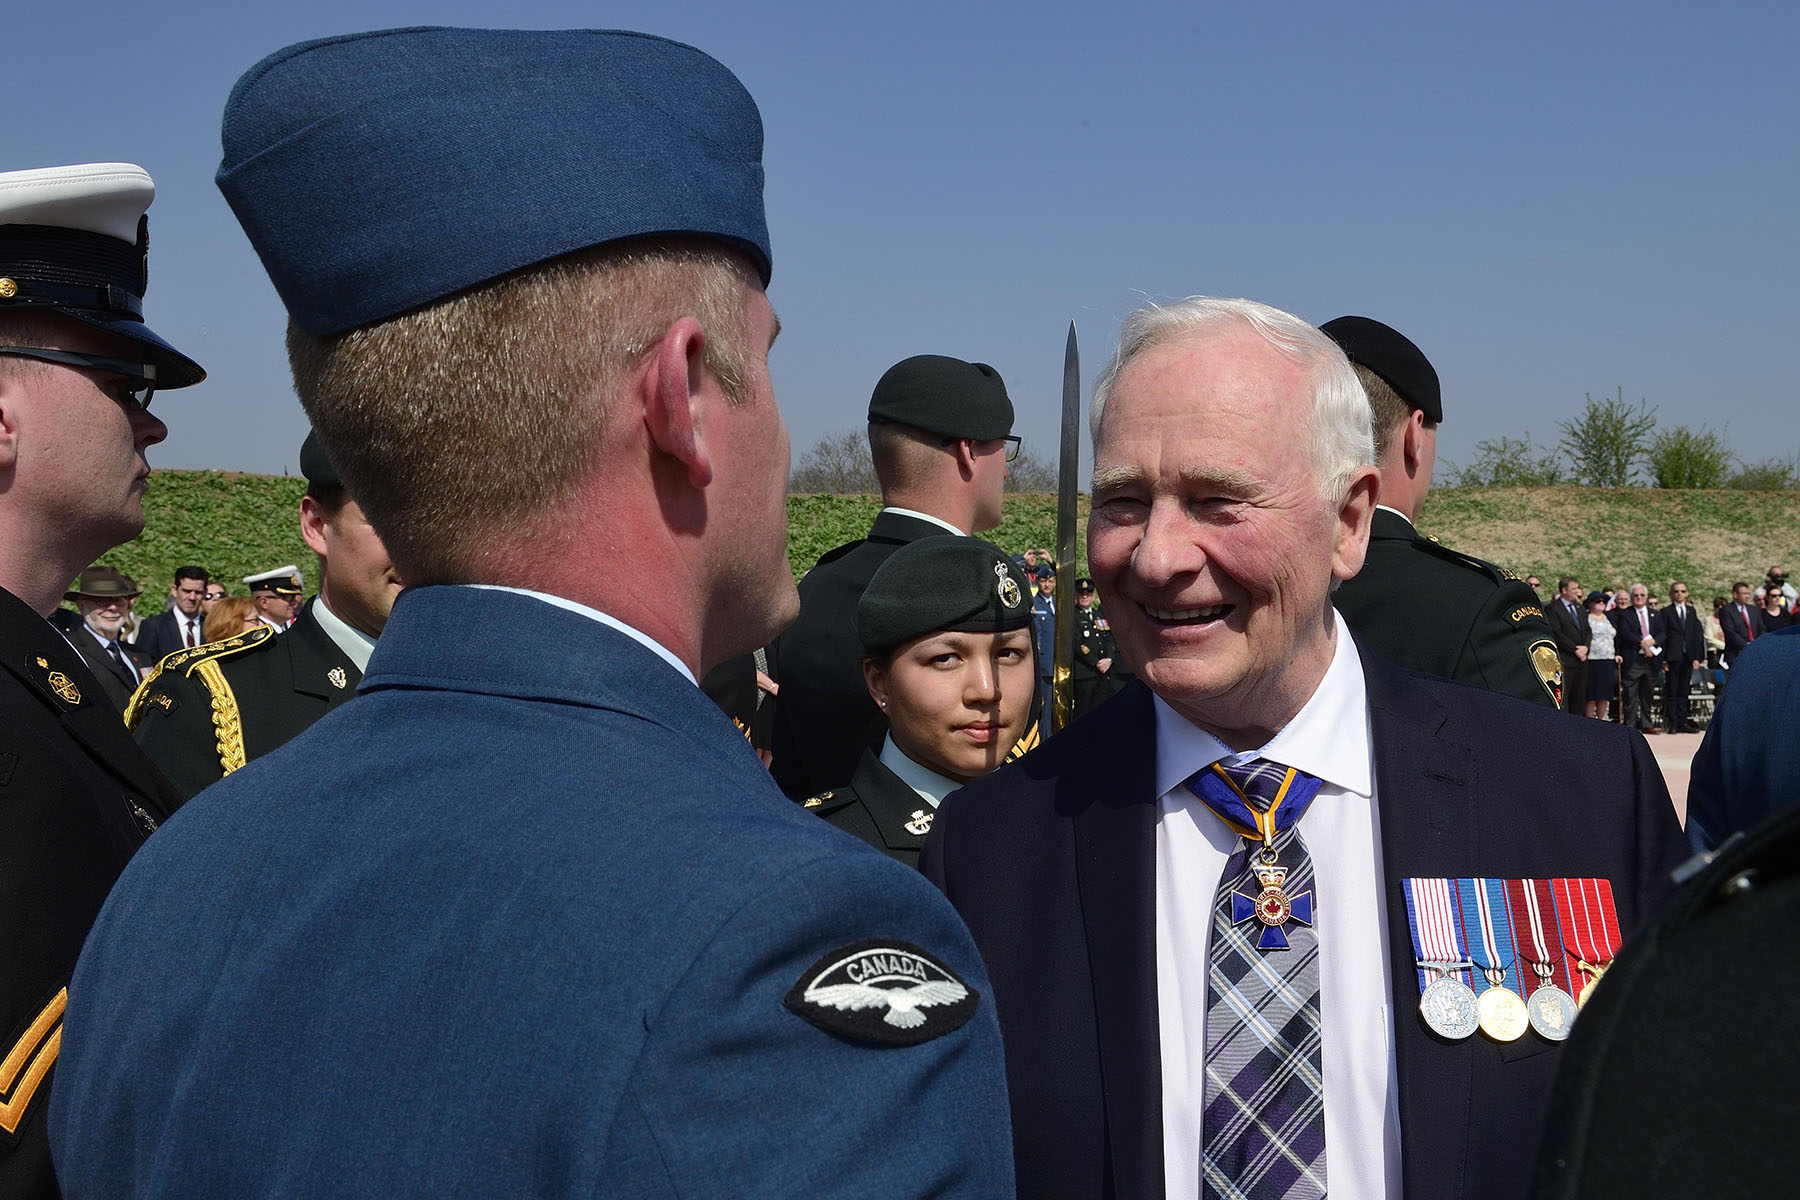 The Governor General inspected the rows of the guard of honour.